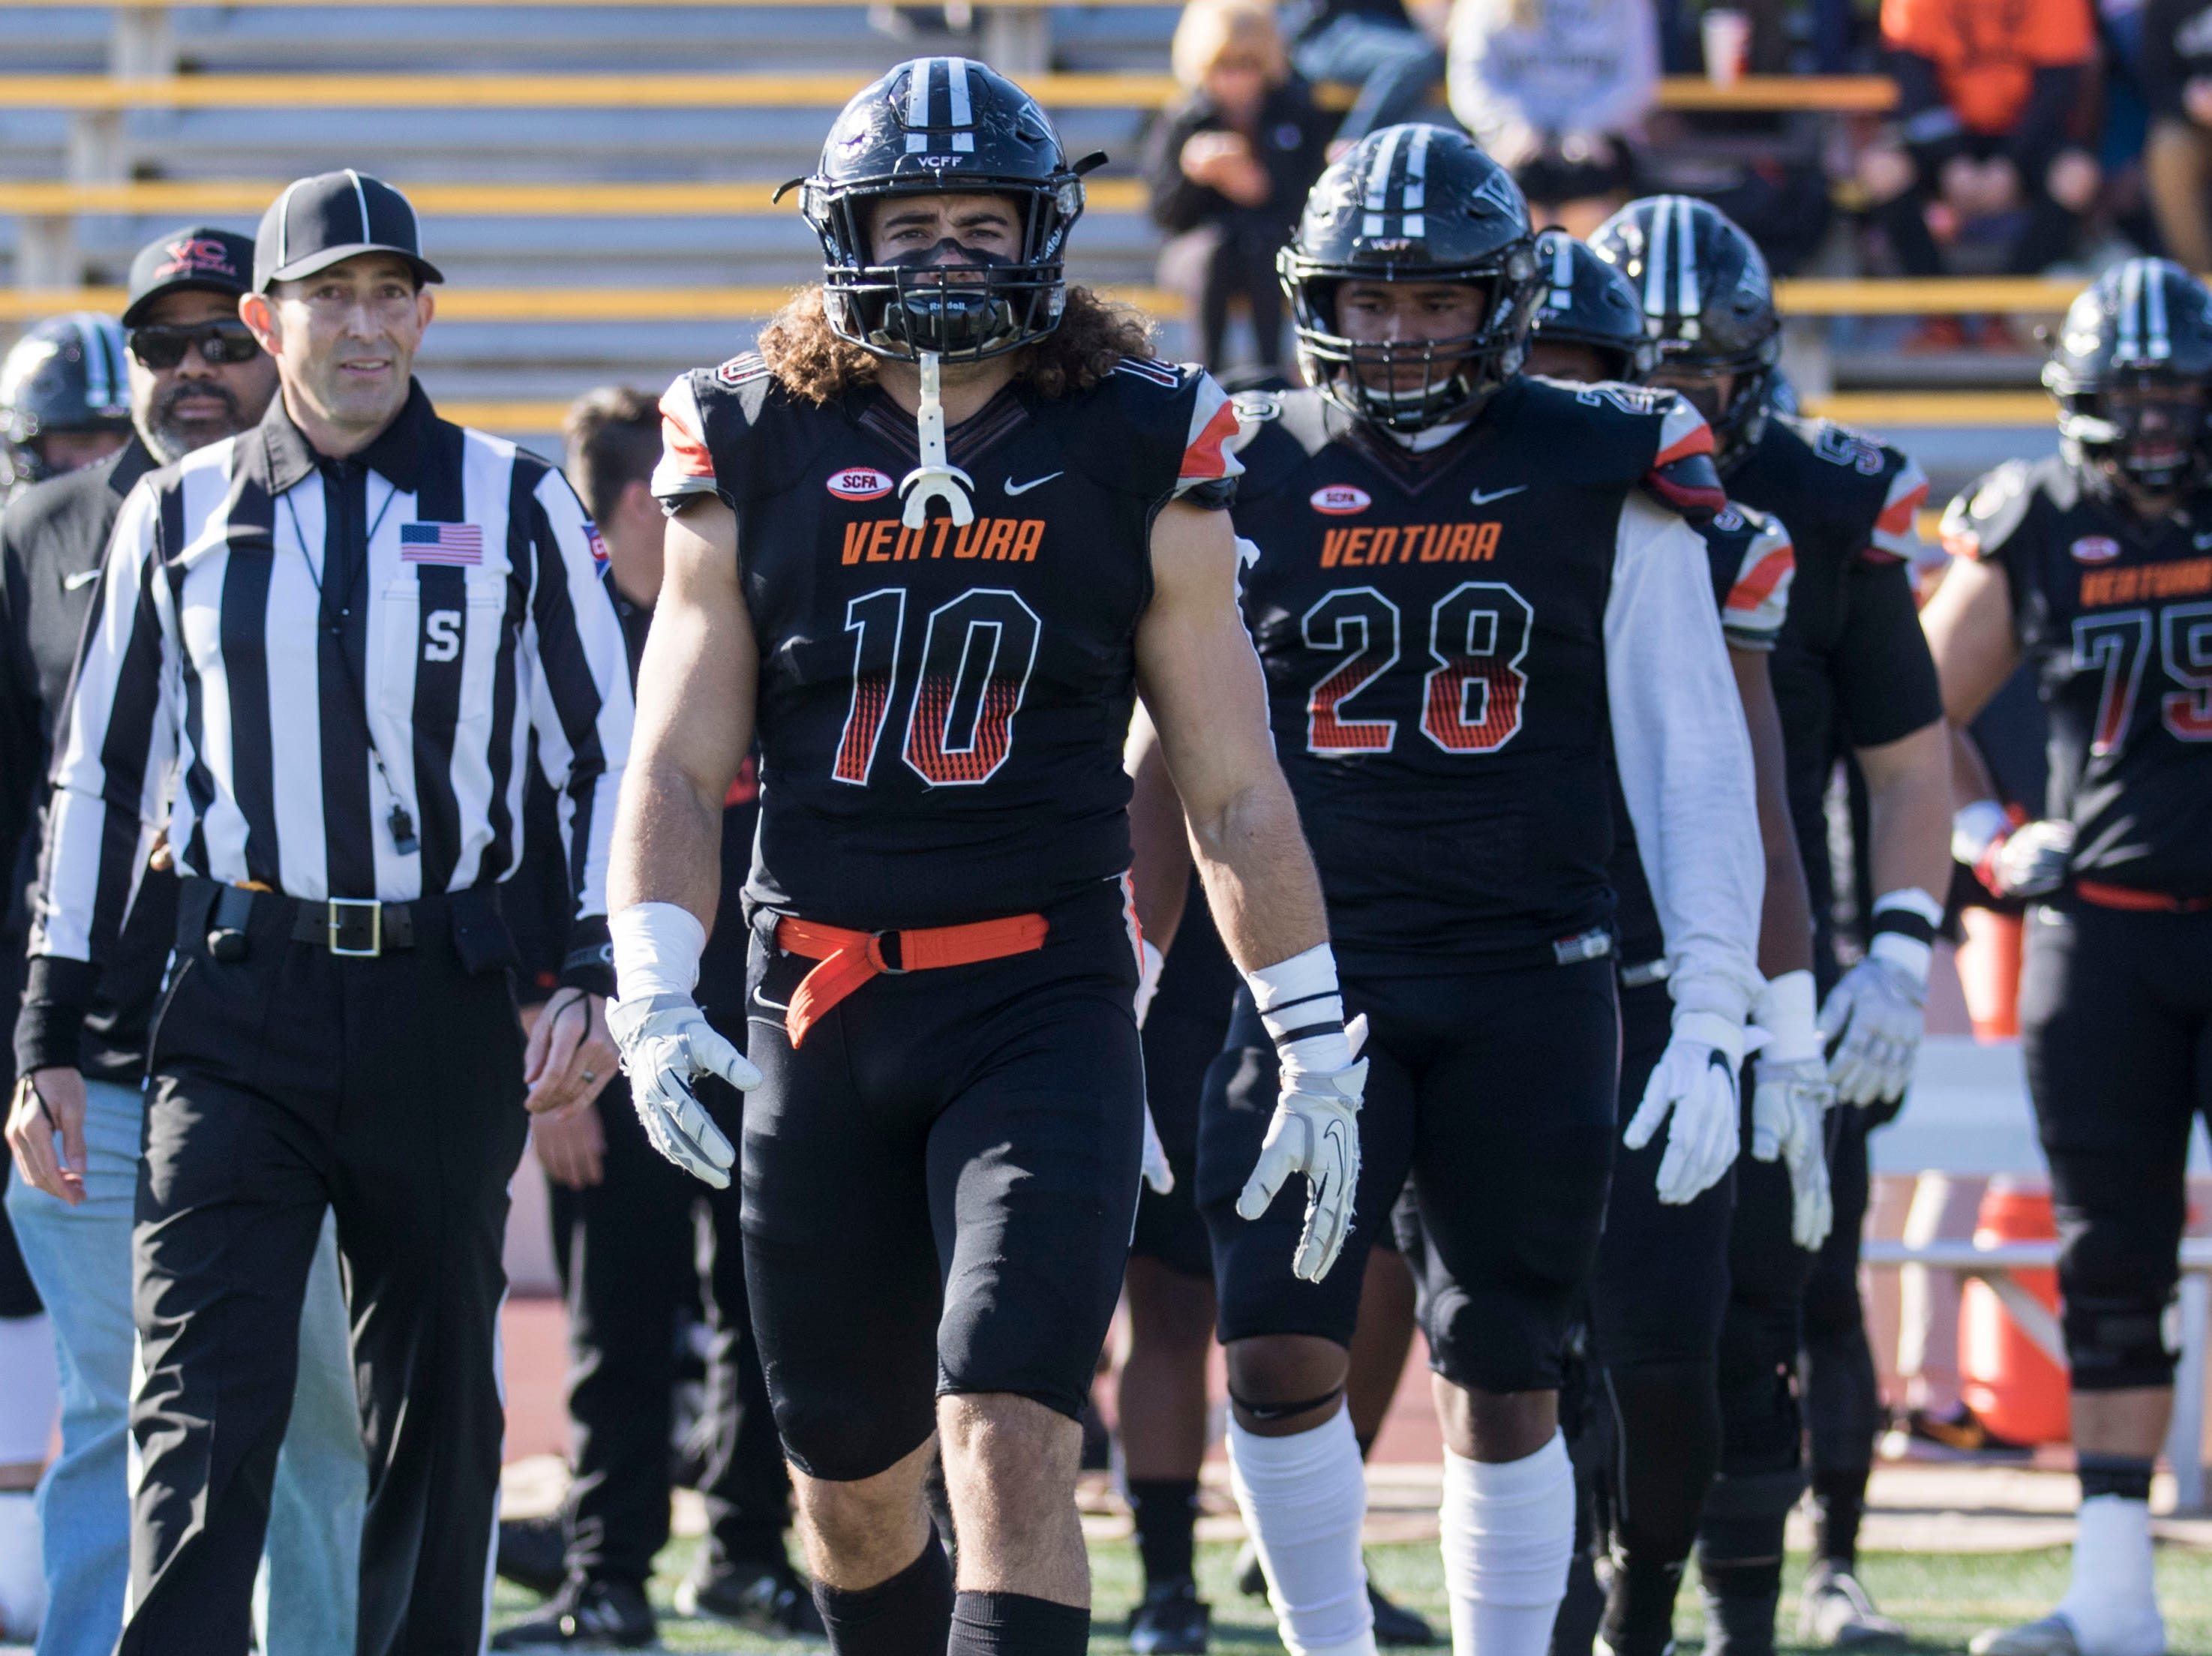 Linebackers Trennan Carlson (left) and Dondre Baker led the Ventura College defense to its first appearance in the CCCAA state championship game on Saturday afternoon at Sacramento City's Hughes Stadium.